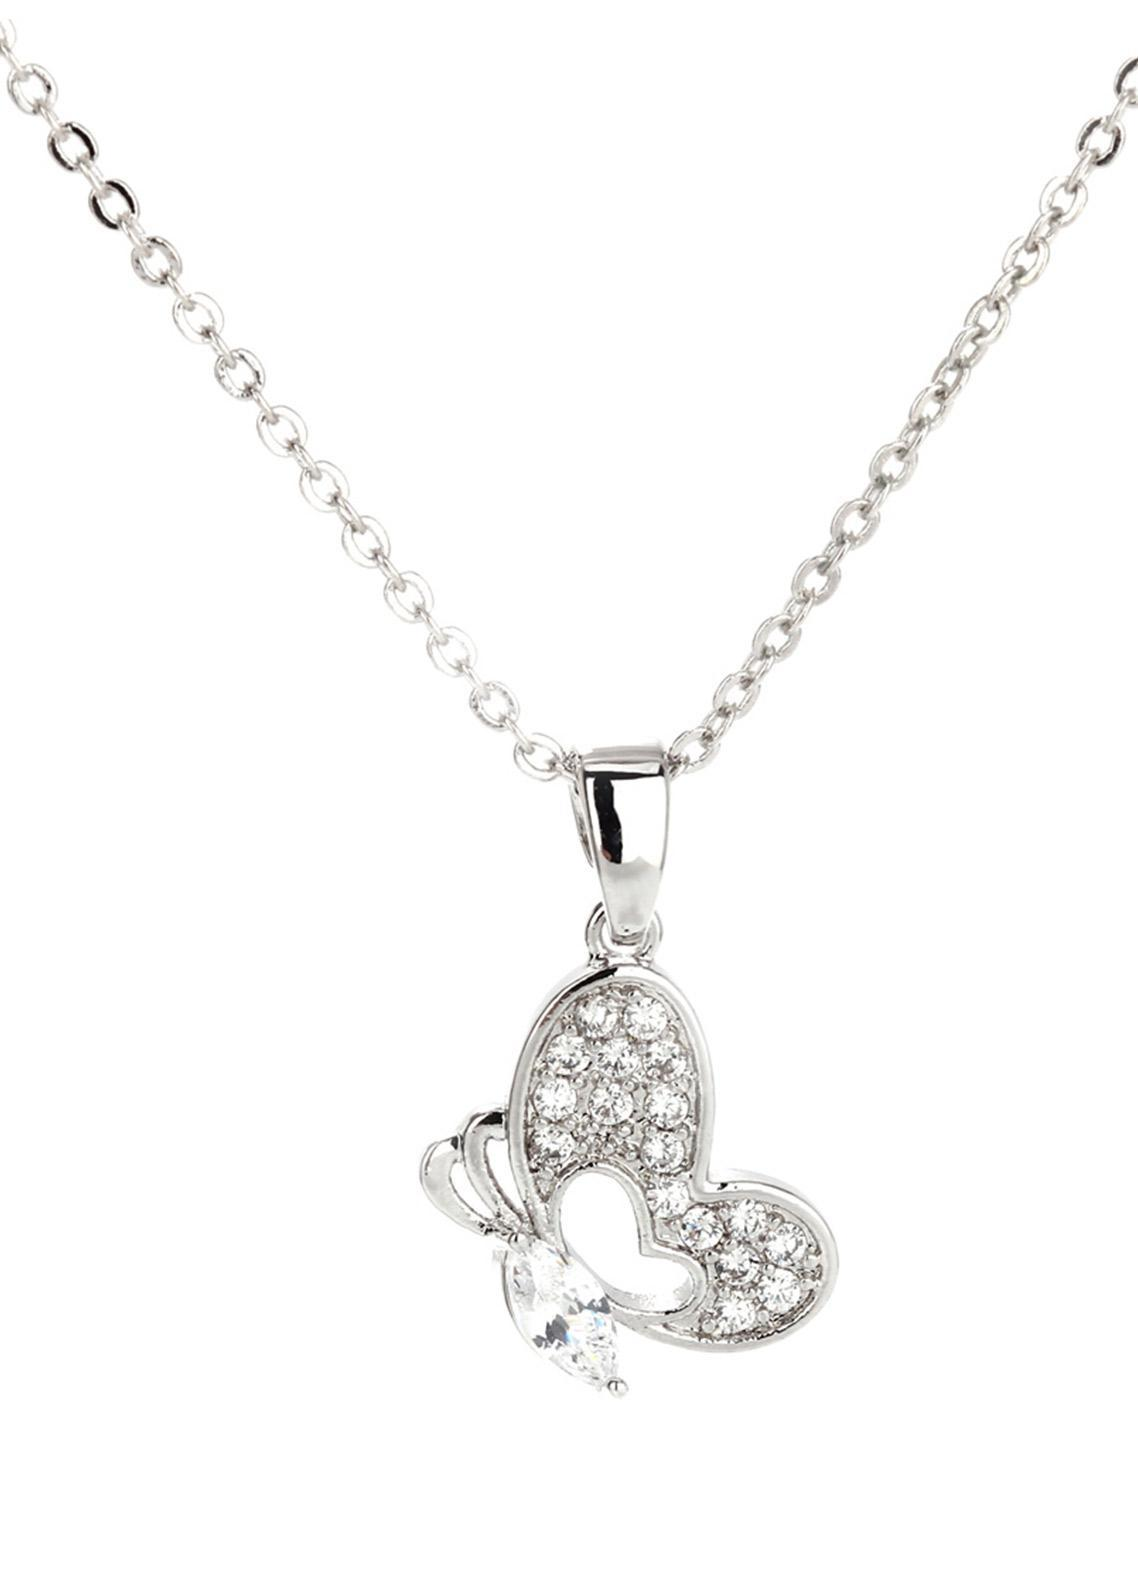 Anna Grace London by Silk Avenue Silver Plated Crystal Butterfly Necklace AGN0034 - Ladies Jewellery